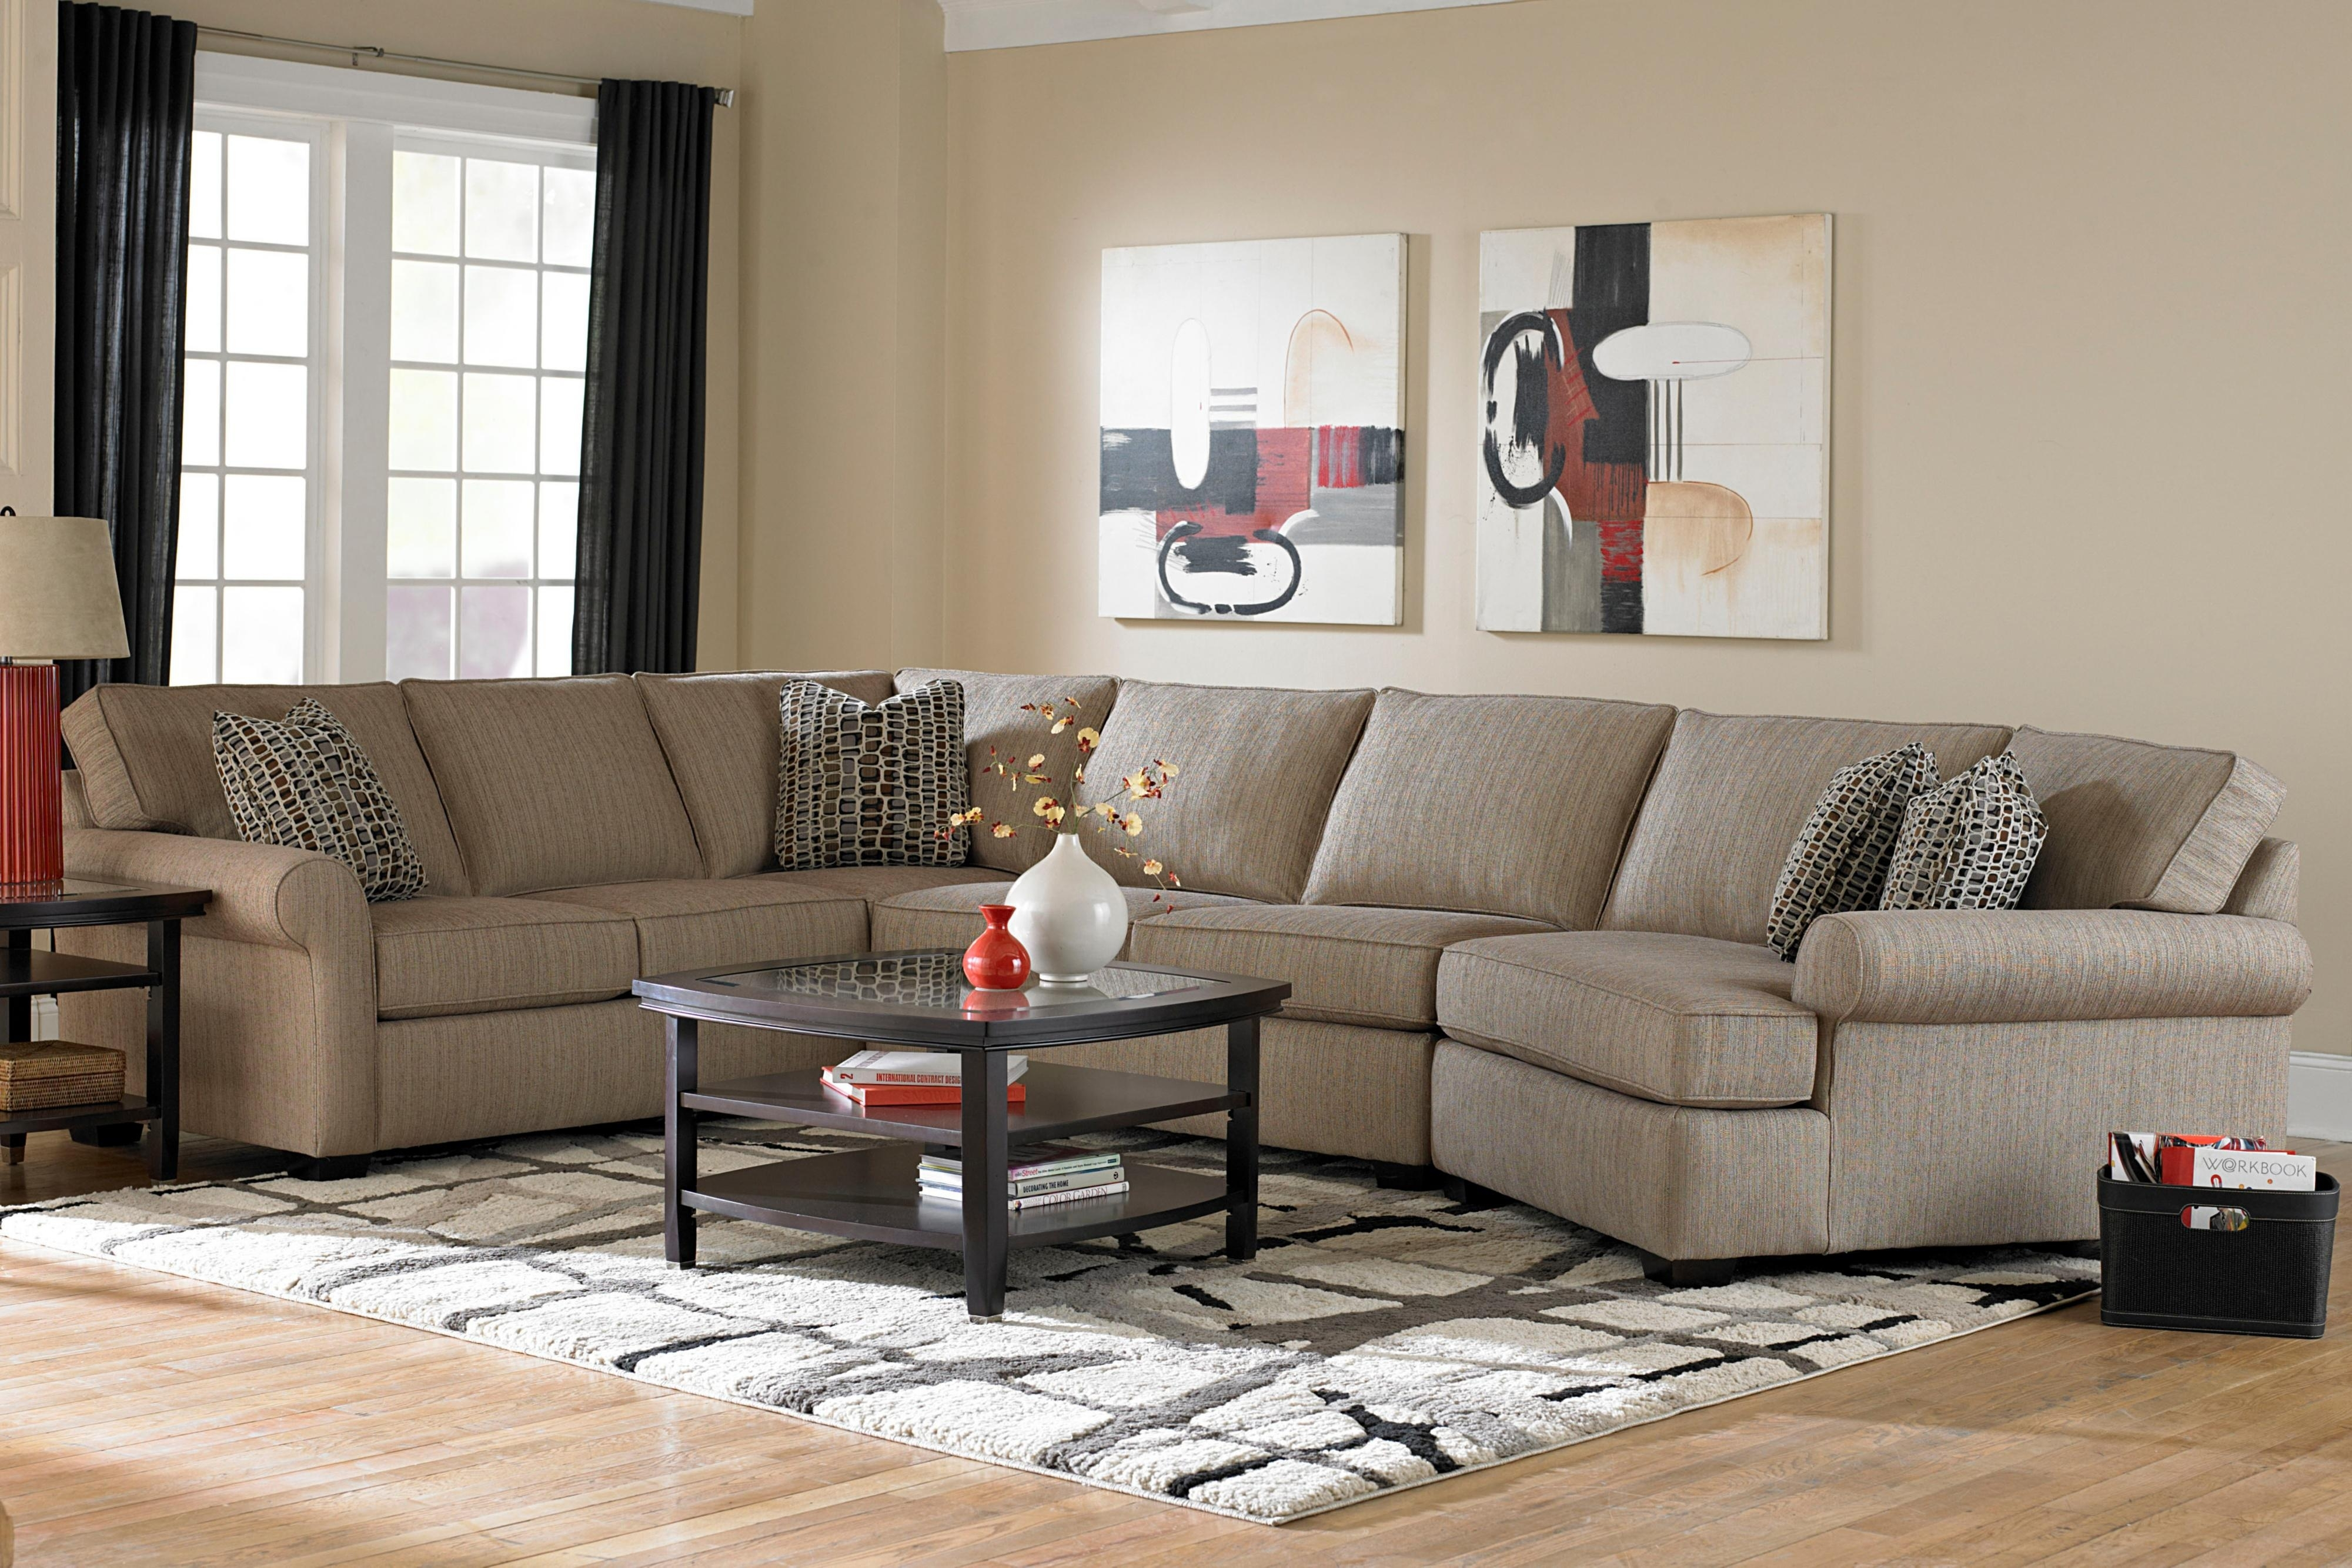 Broyhill Furniture Ethan Transitional Sectional Sofa With Right With Wichita Ks Sectional Sofas (Image 6 of 10)